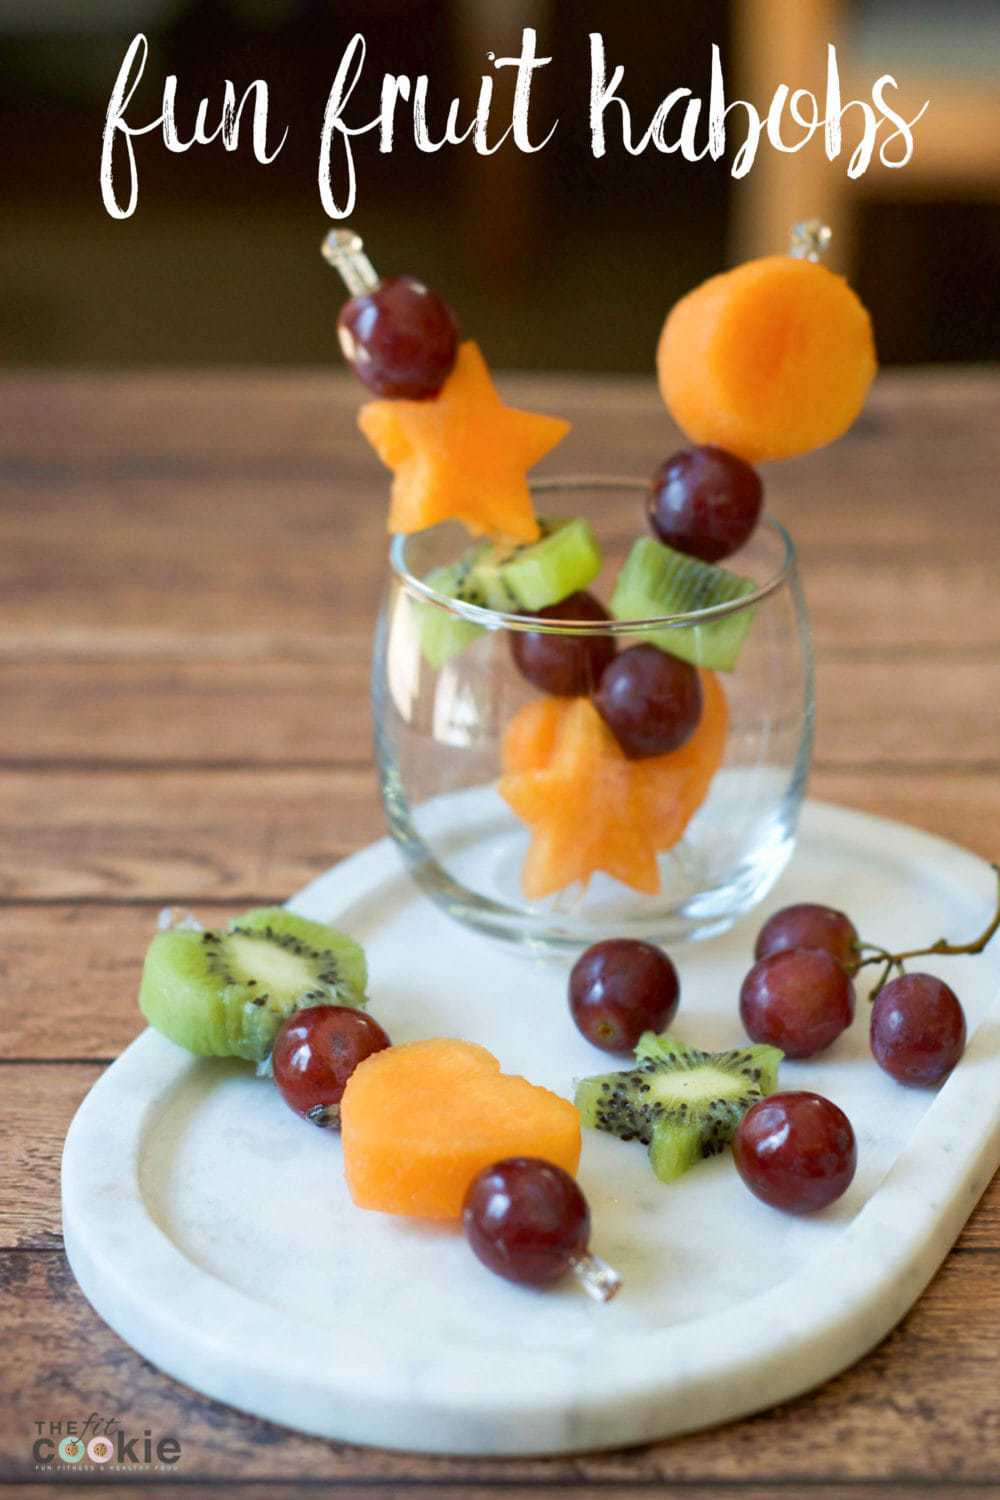 Here's a creative way to serve fruit: Fun Shape Fruit Kabobs! Serve with your favorite fruit dip or yogurt for snacks or party appetizers - @thefitcookie #paleo #vegan